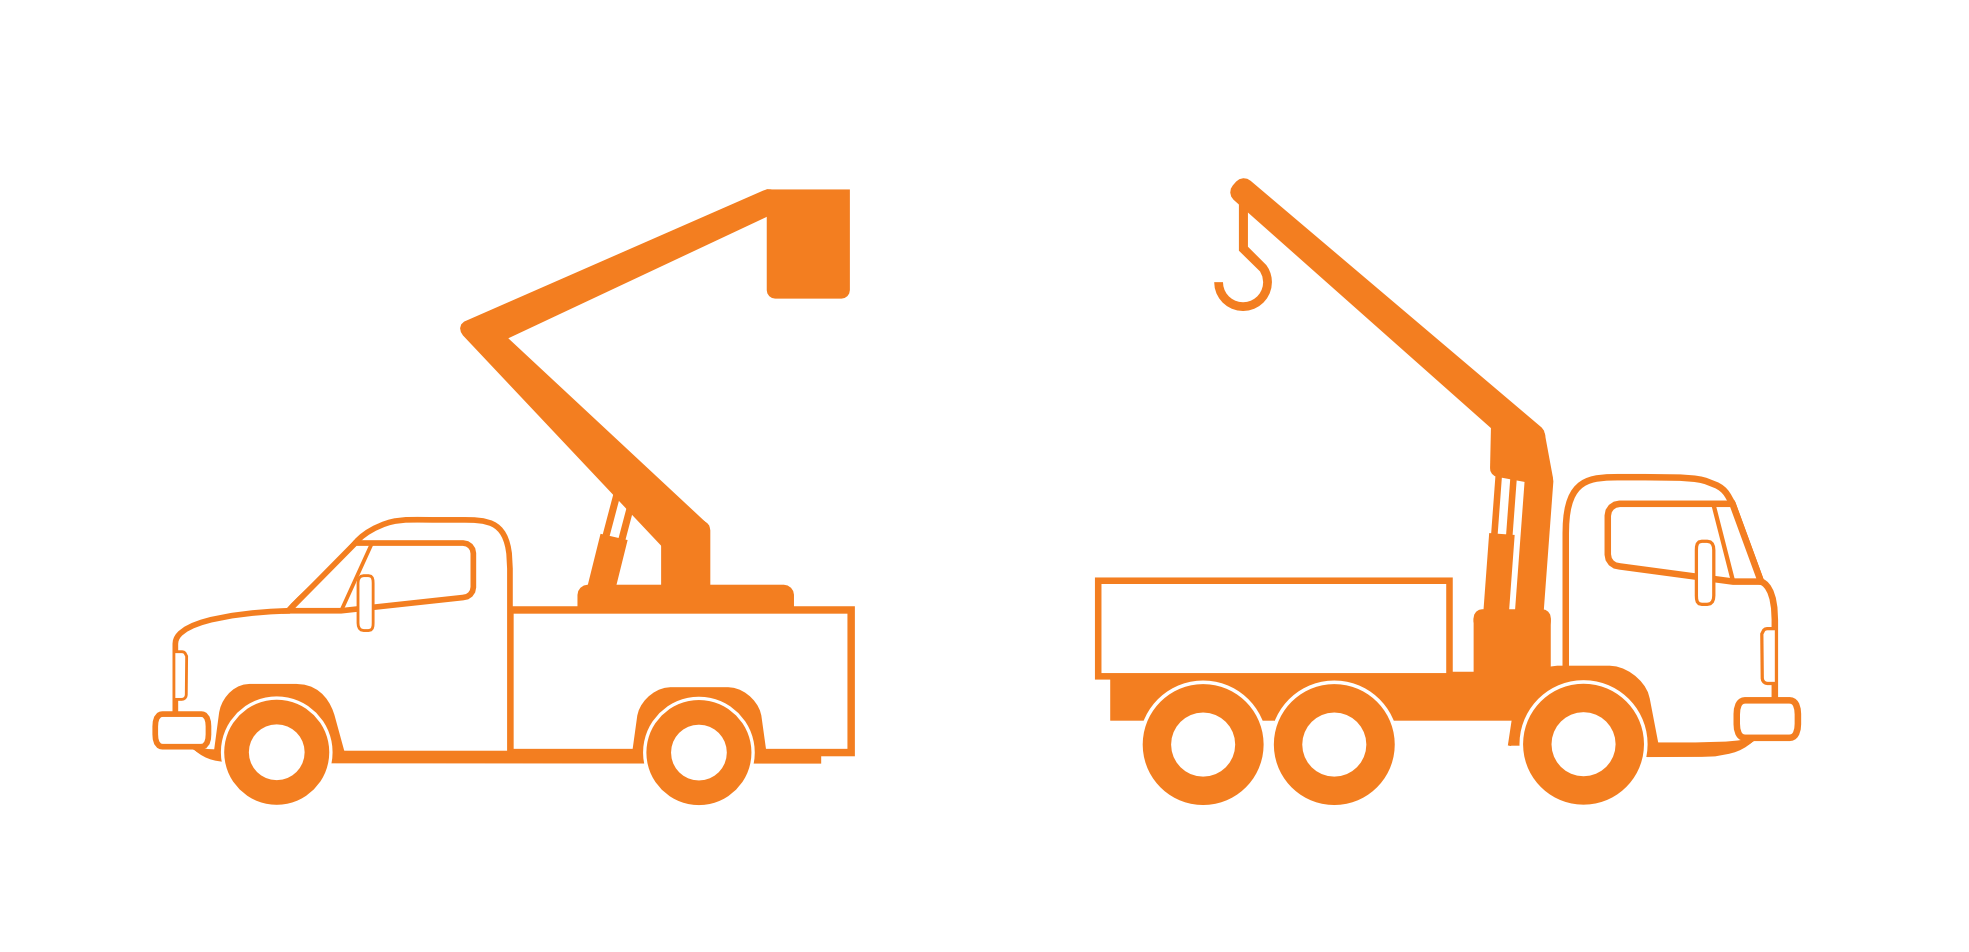 clipart free Png real and vector. Construction crane clipart.